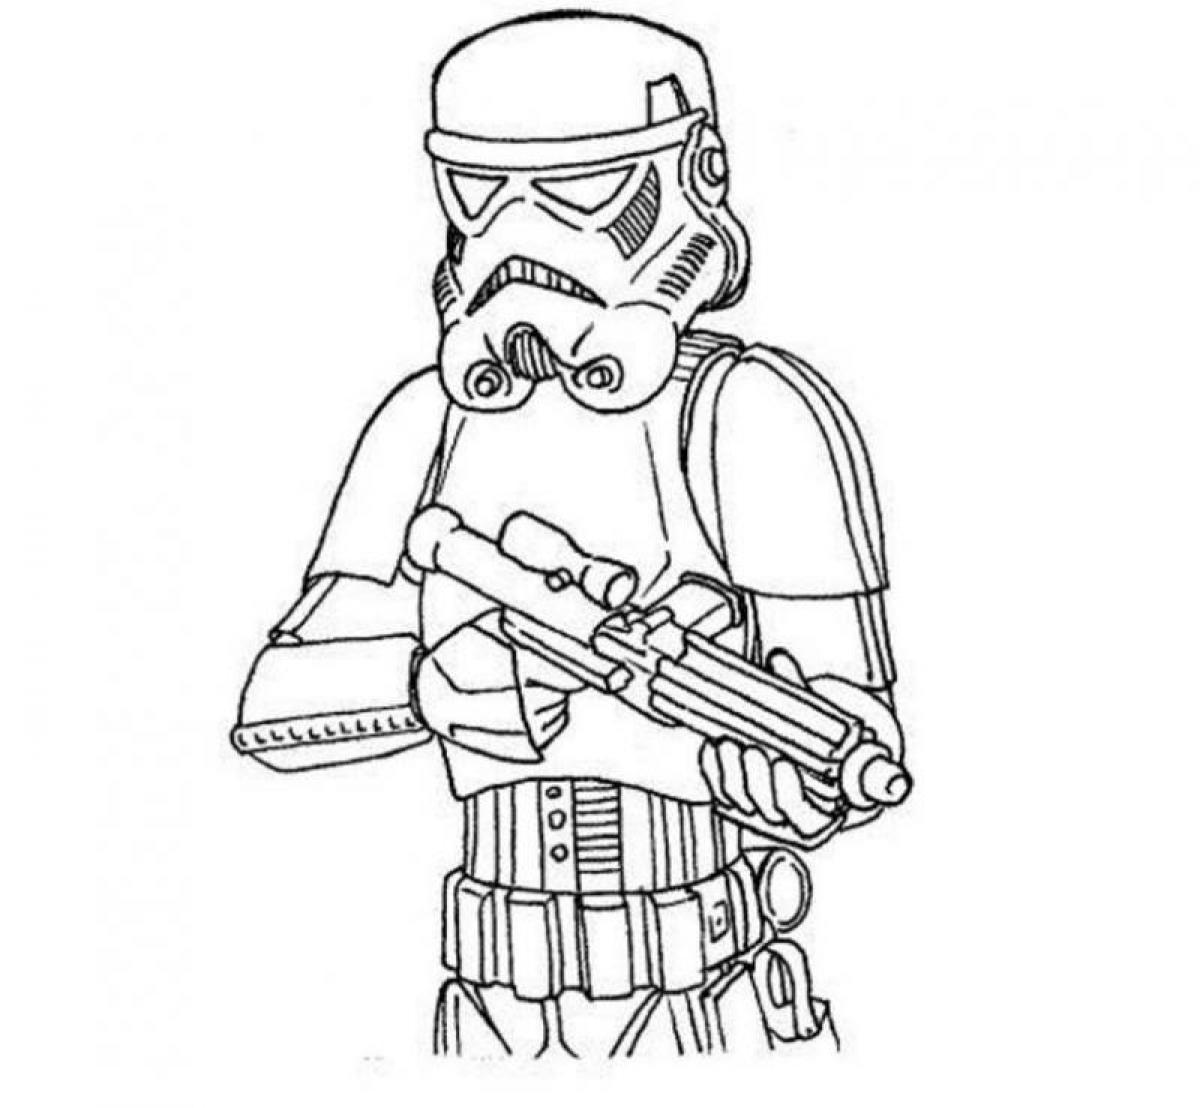 1200x1108 Star Wars Stormtrooper Coloring Page